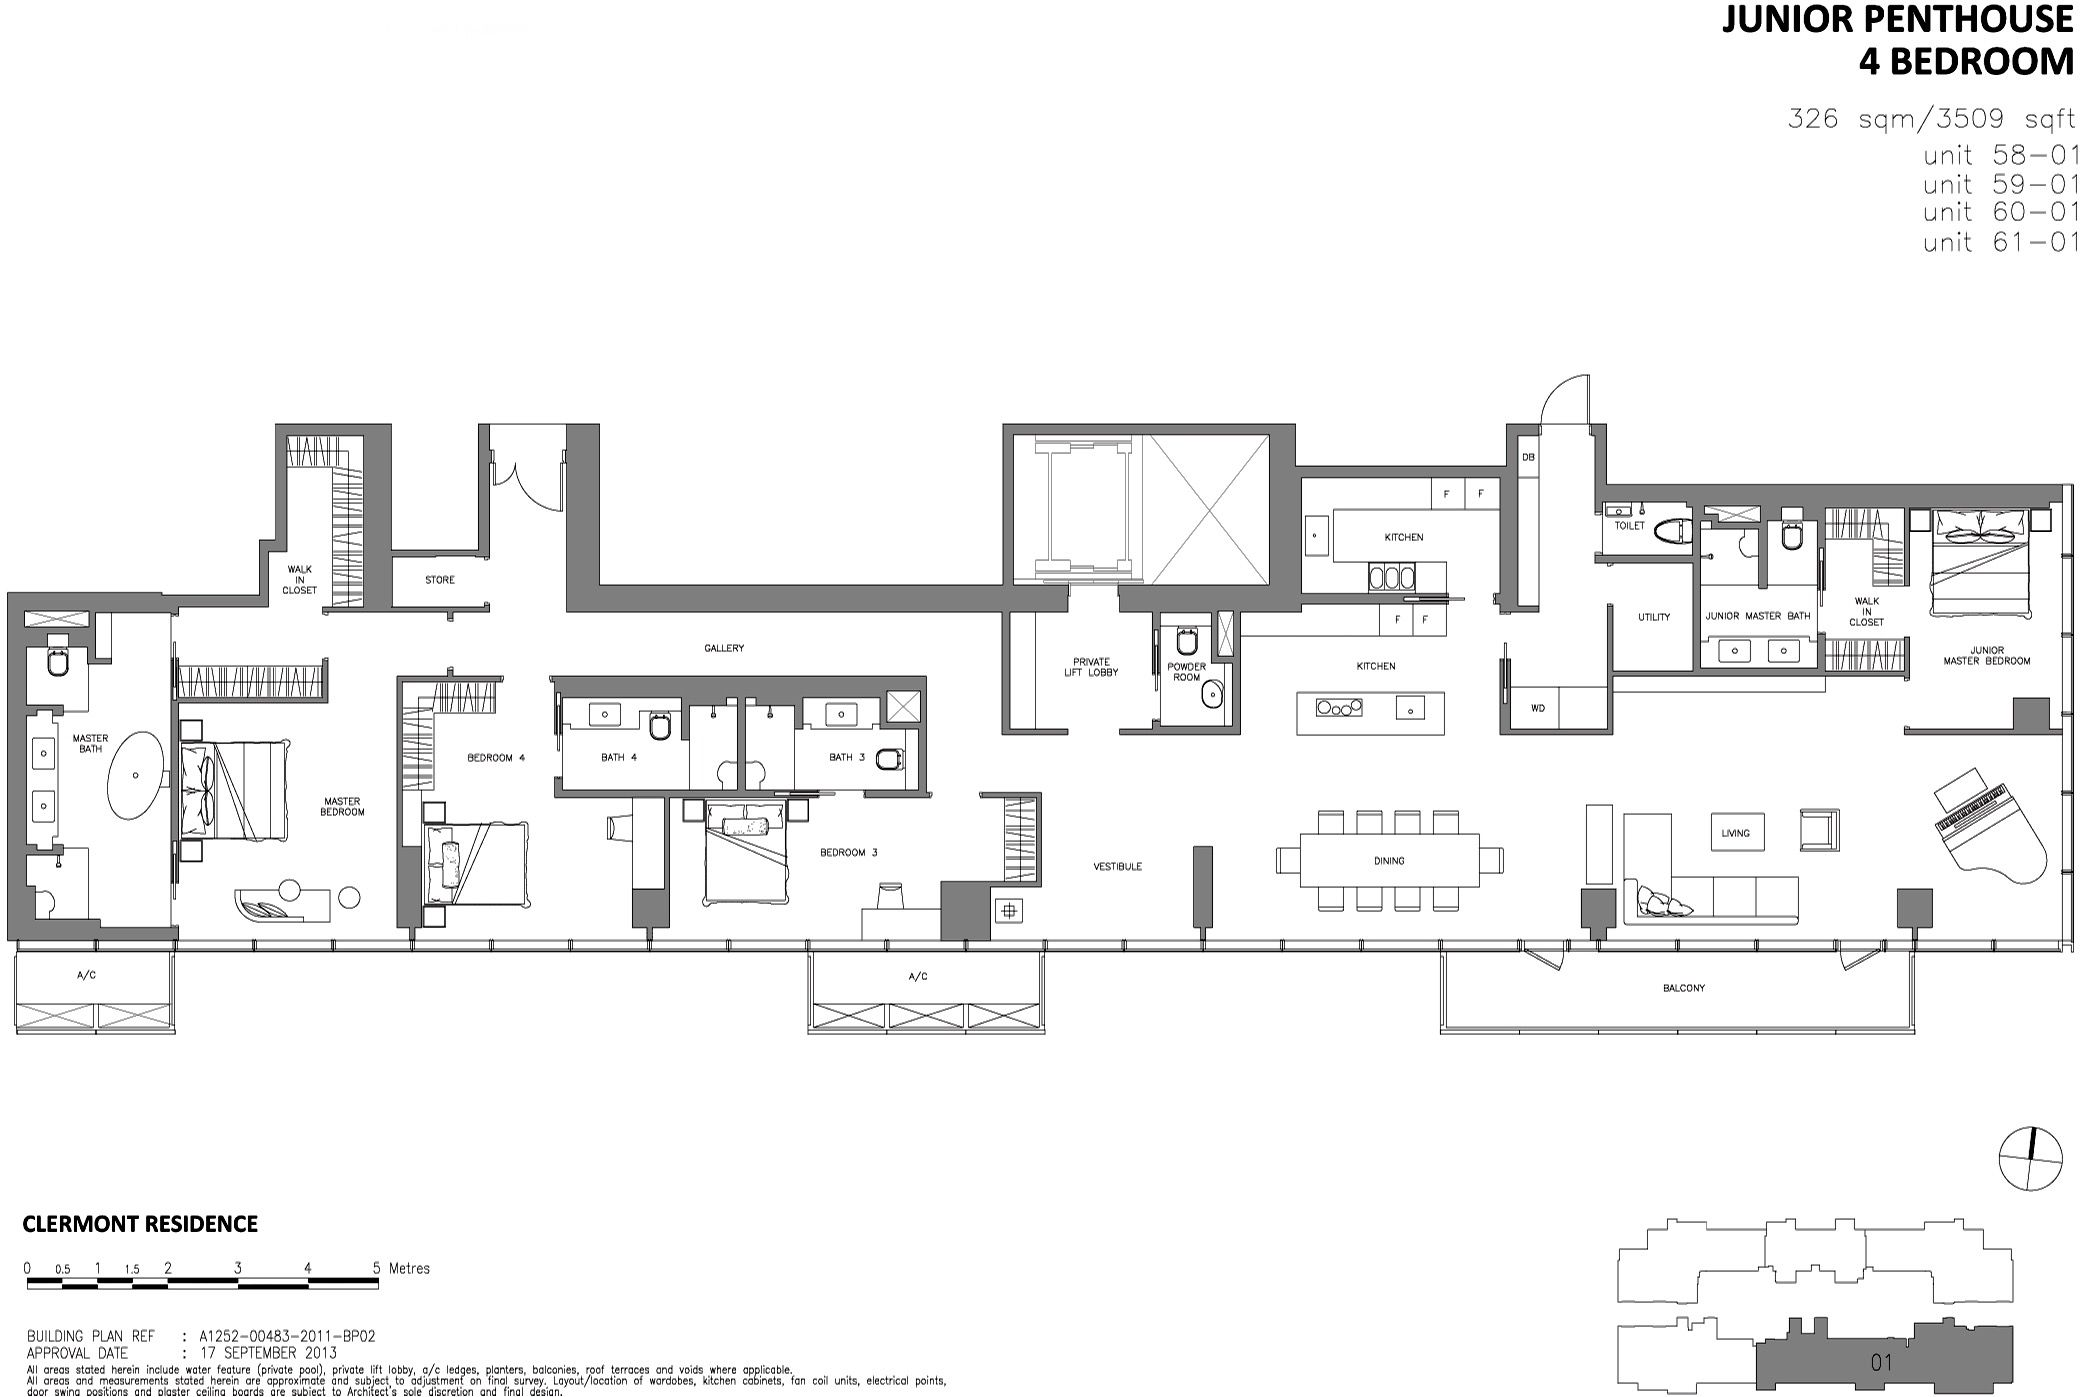 Wallich Residence Singapore 4br Junior Penthouse 3509sqft Floor Plans Multifamily Housing Penthouse View